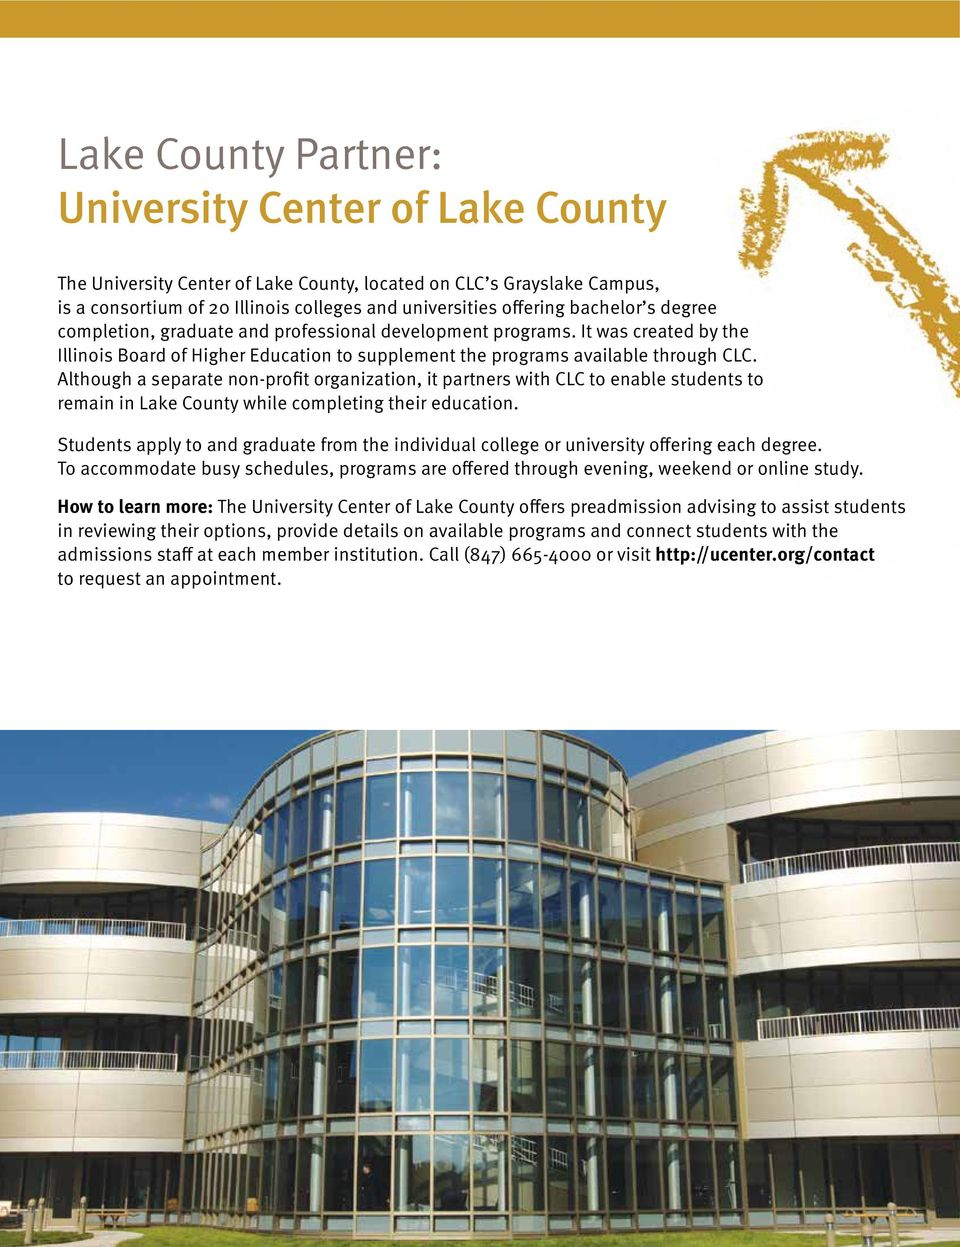 Although a separate non-profit organization, it partners with CLC to enable students to remain in Lake County while completing their education.